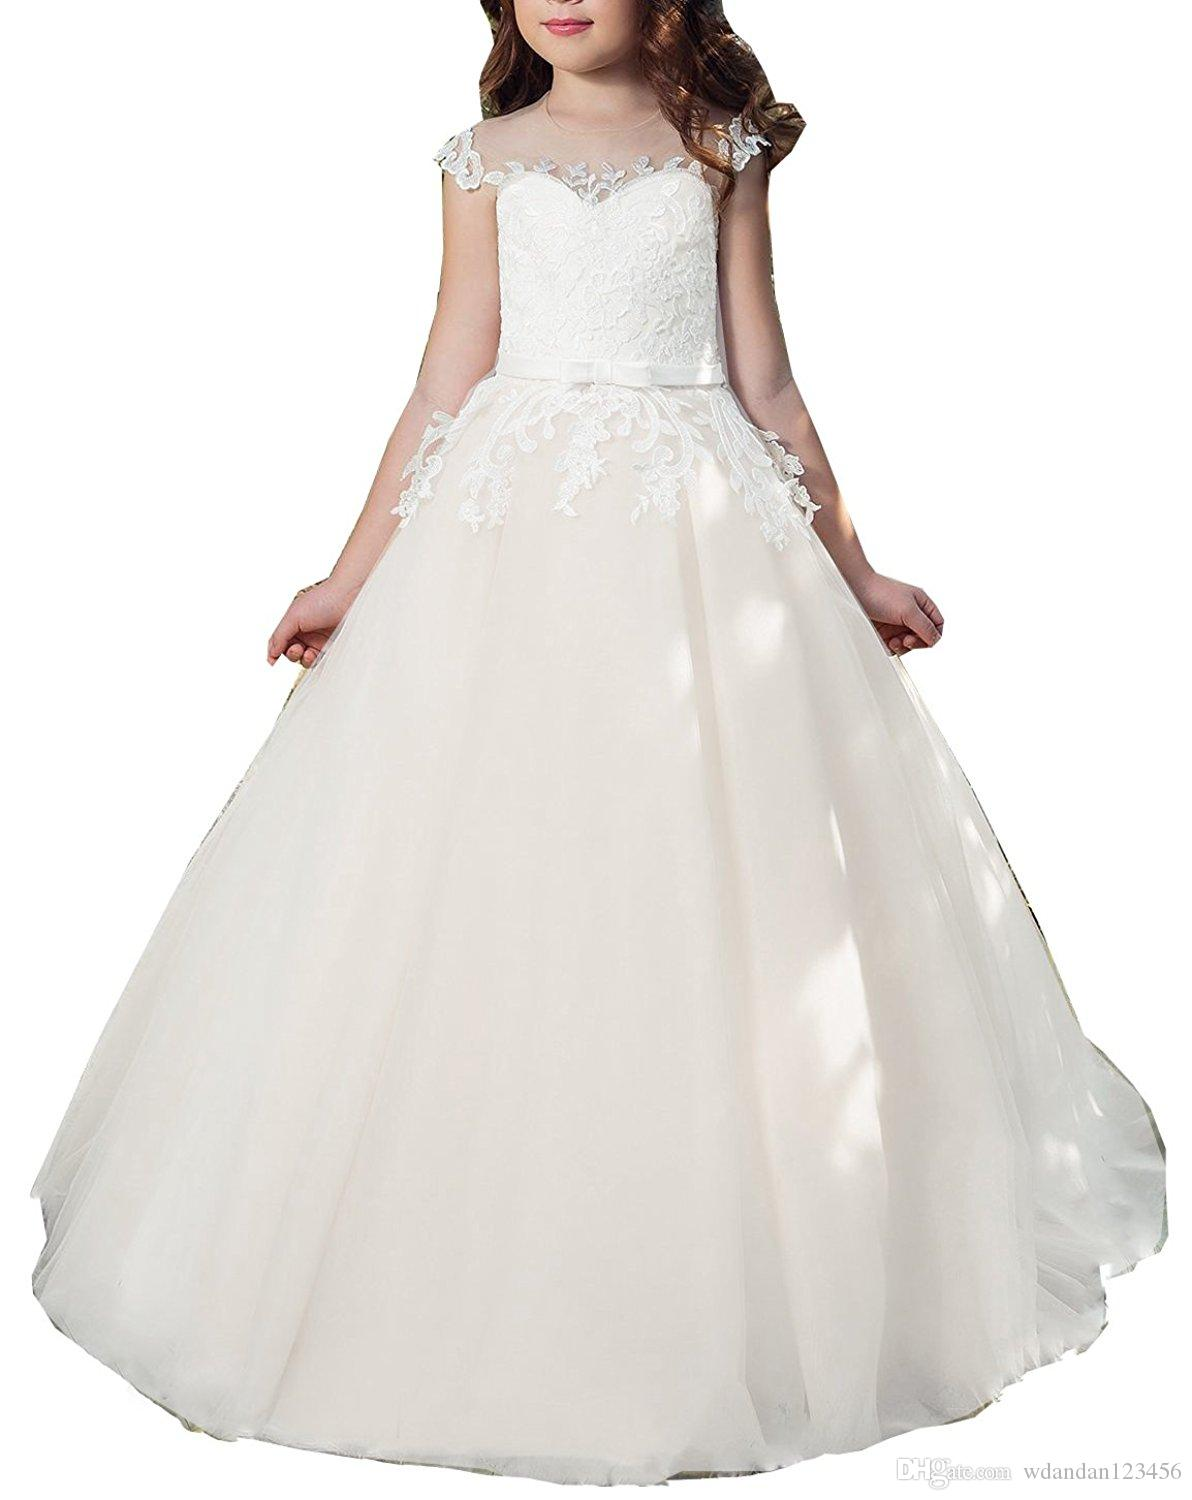 2017 New Flower Girl Dresses Kids First Communion Dress Ball Gown Lace Pageant Gowns 072